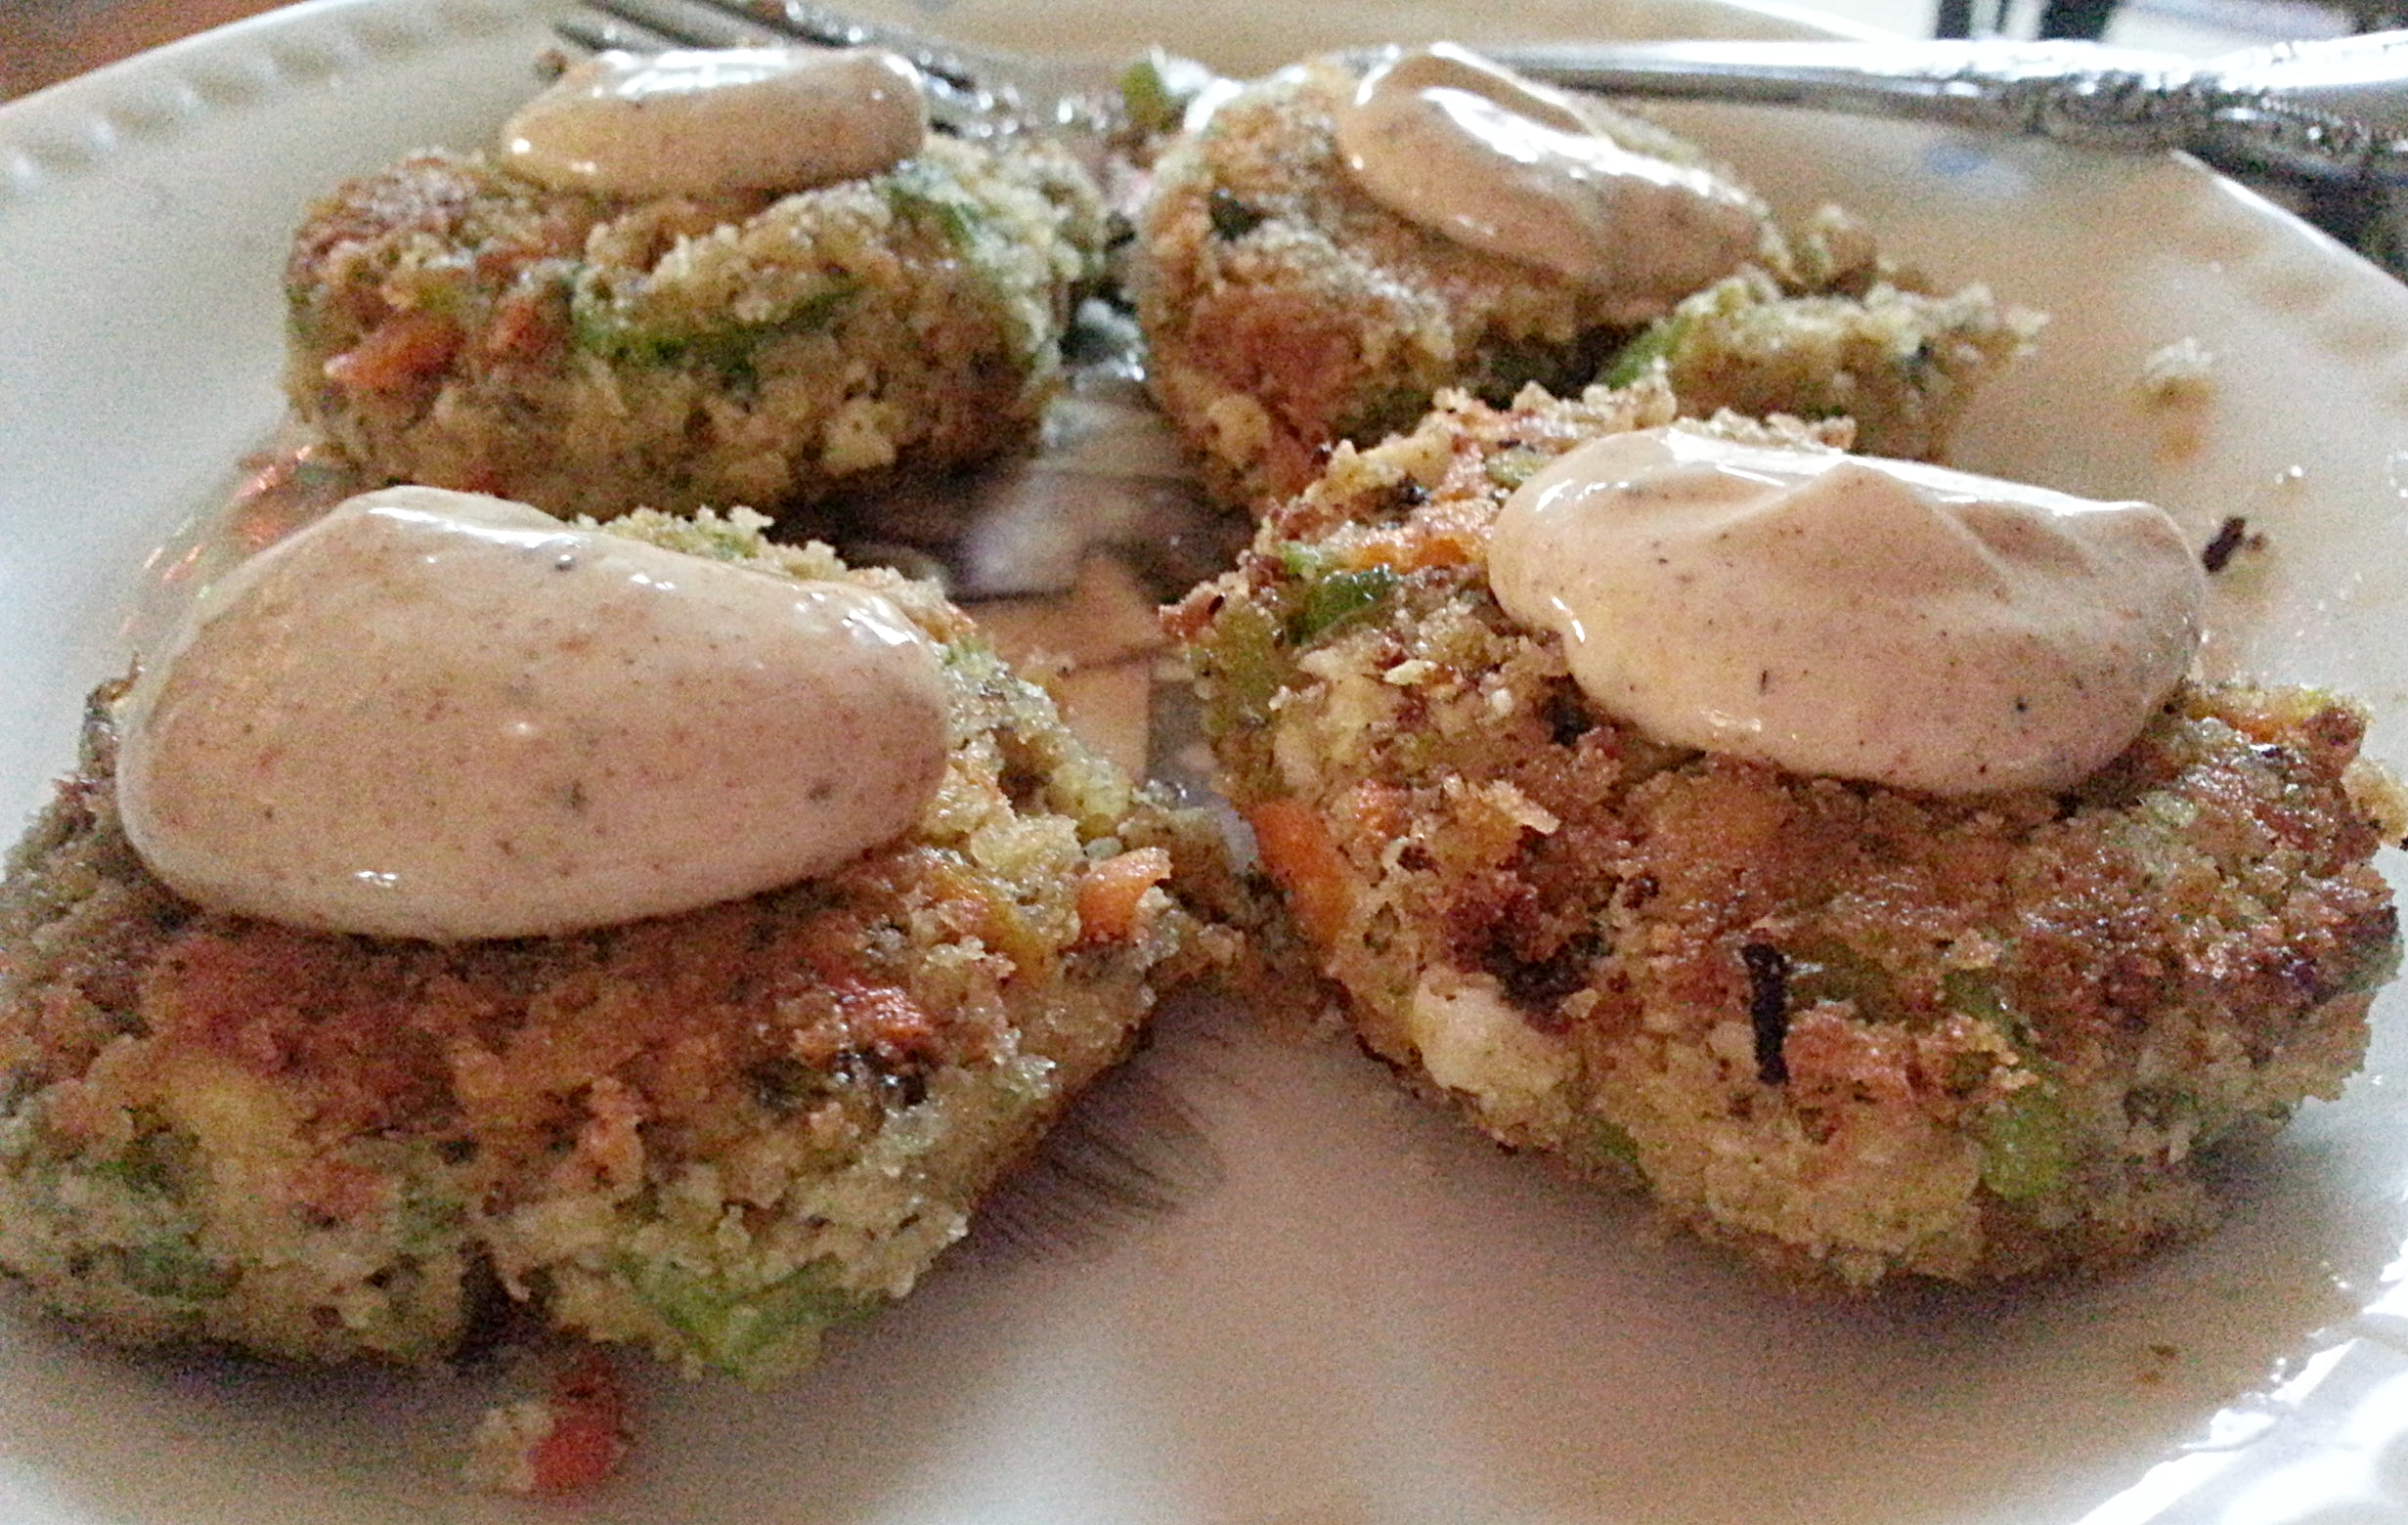 Vegan Crab cakes.